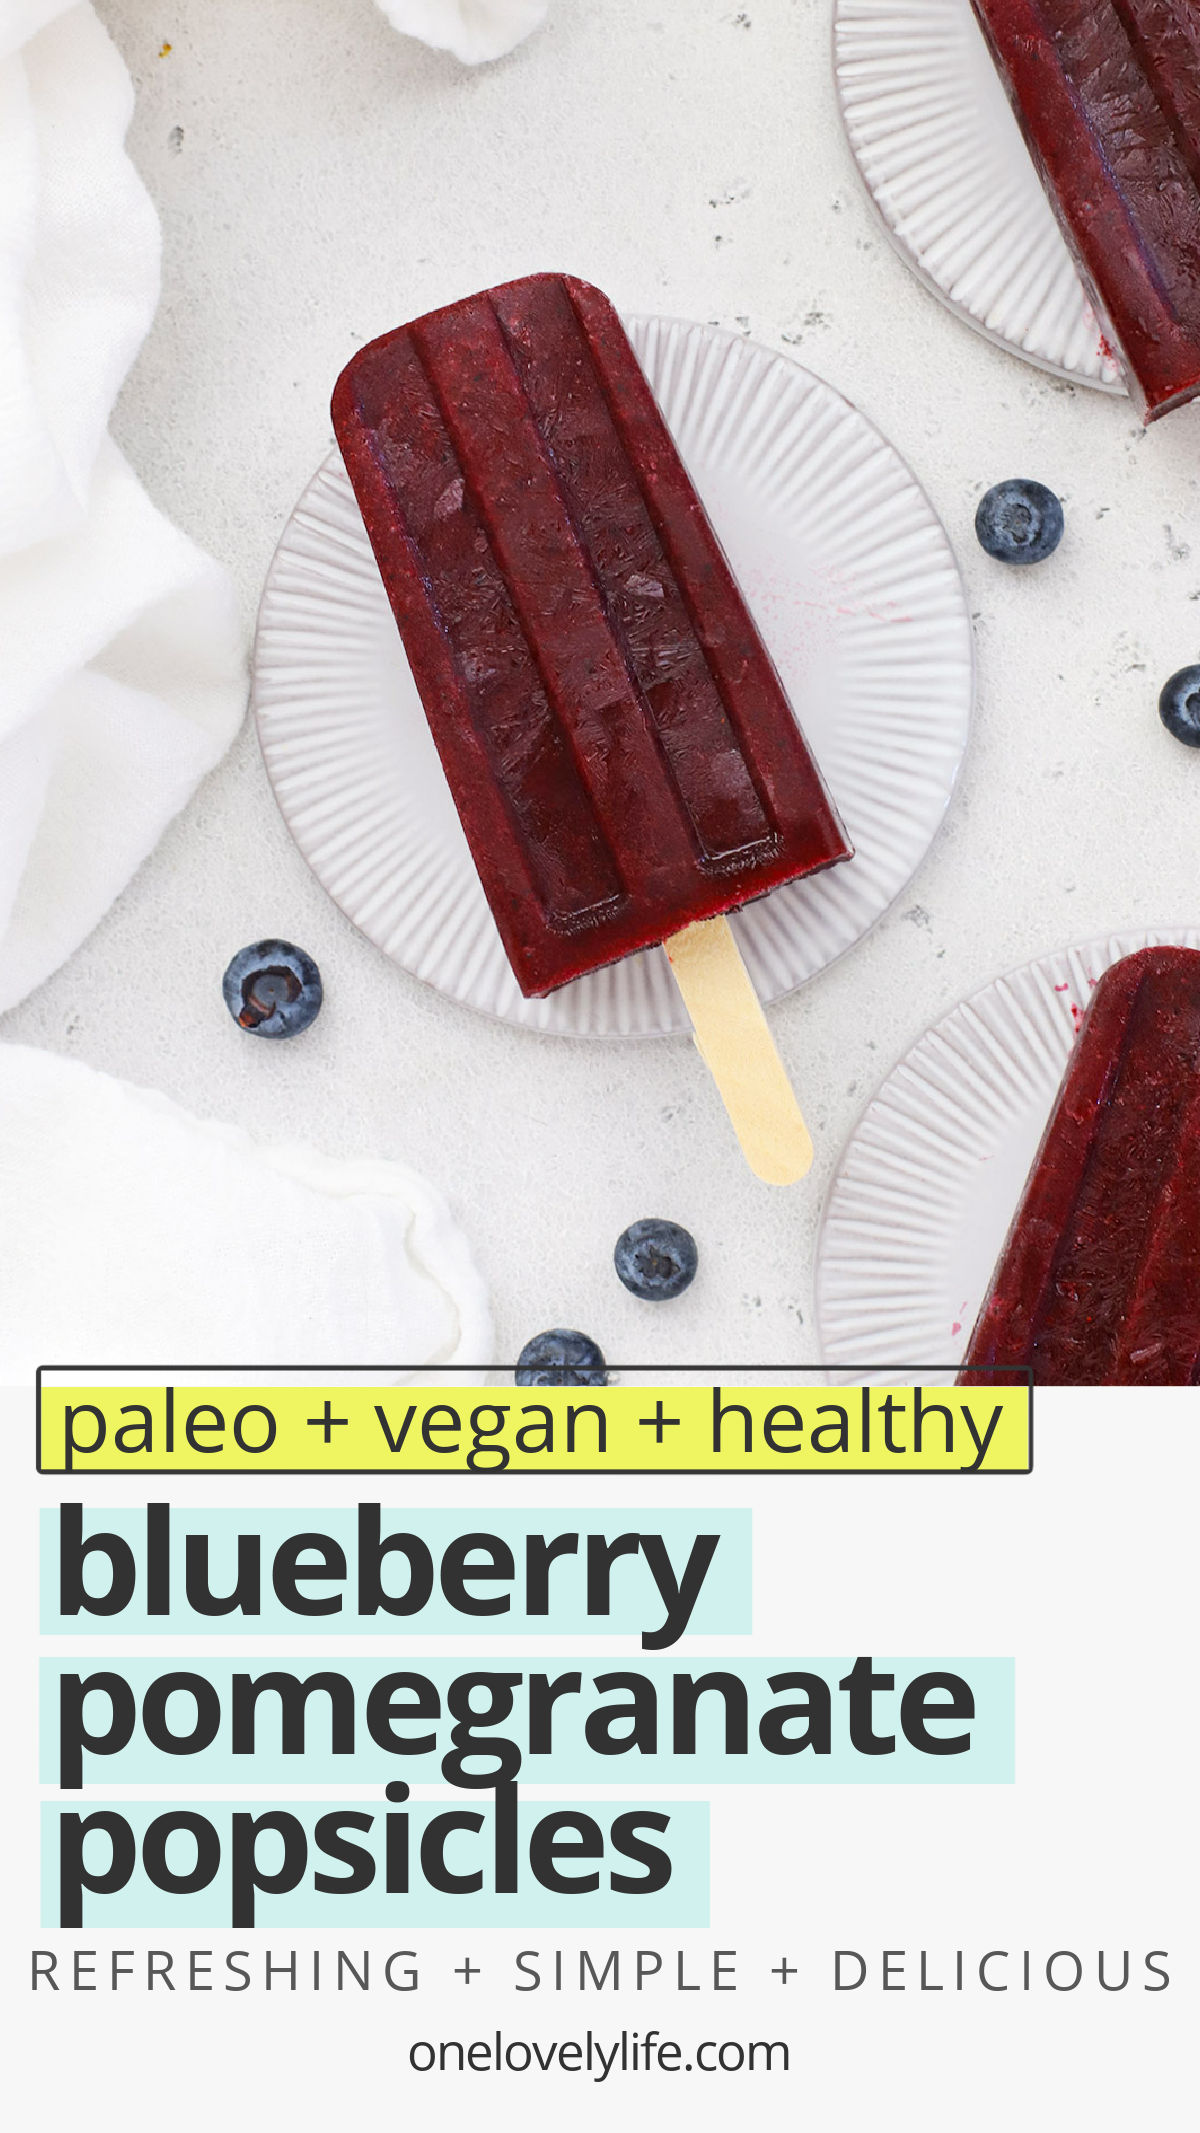 Blueberry Pomegranate Popsicles - These healthy blueberry popsicles are made of 100% fruit and have a creamy sorbet-like texture you'll fall in love with! // Blueberry Popsicles No Sugar // Blueberry Popsicles Without Yogurt // Homemade Blueberry Popsicles #popsicles #healthysnack #vegan #paleo #blueberry